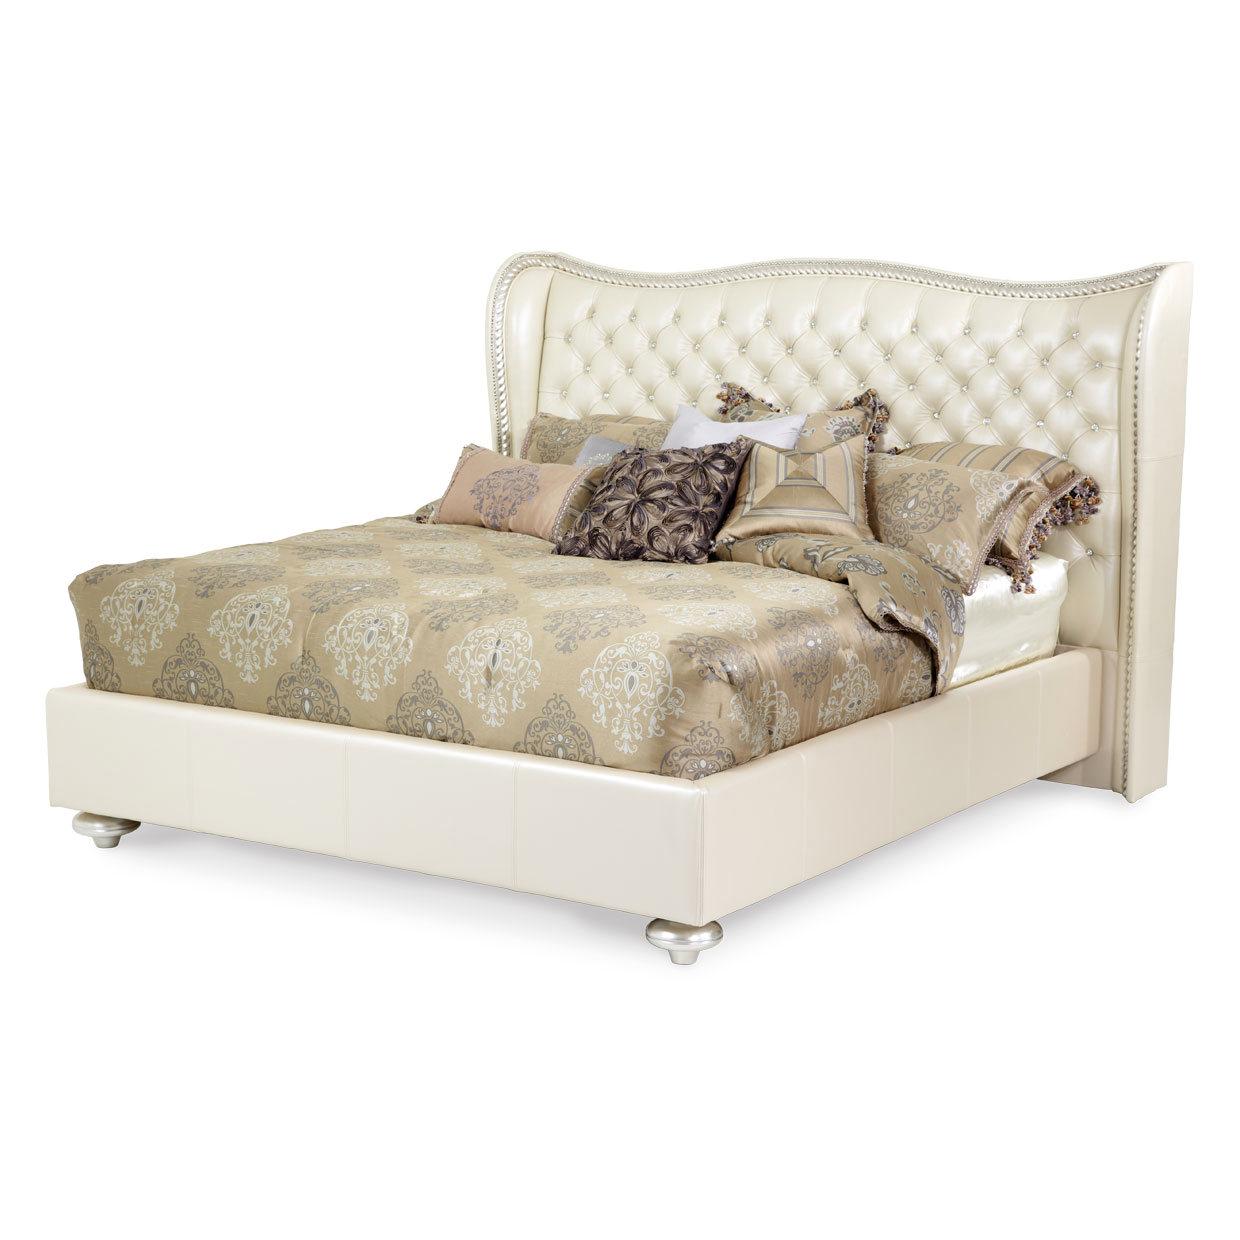 Hollywood Swank Luxury Bed Review